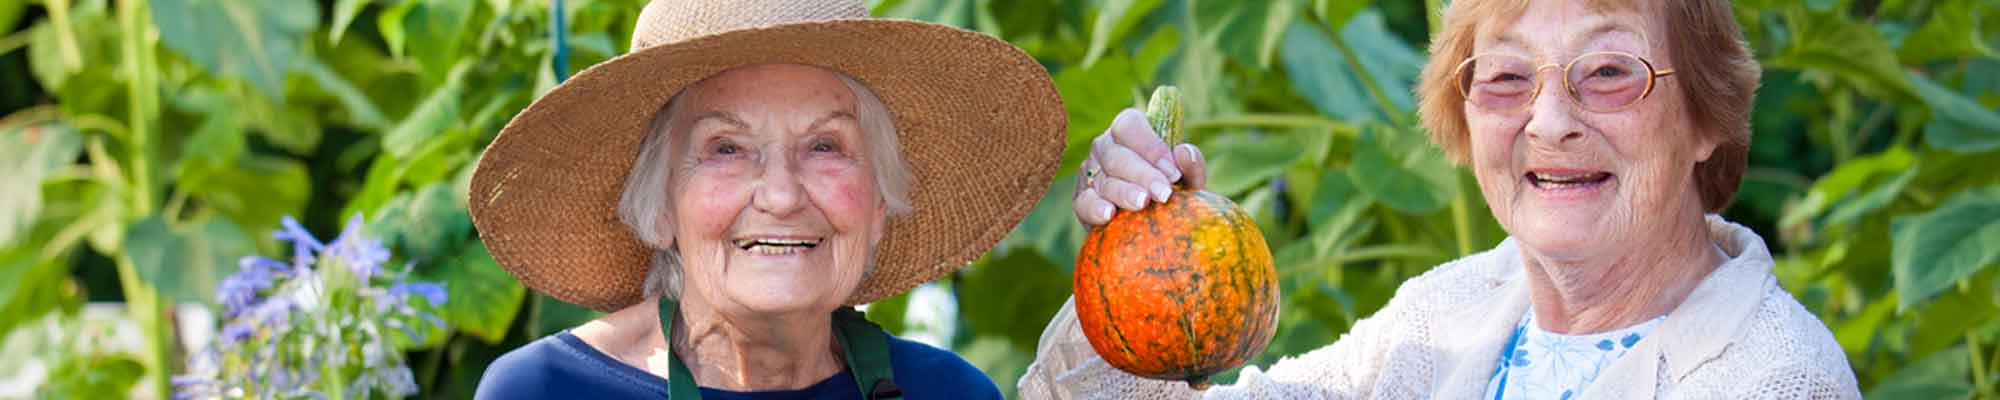 Two Aging Women in a Garden with Orange Squash